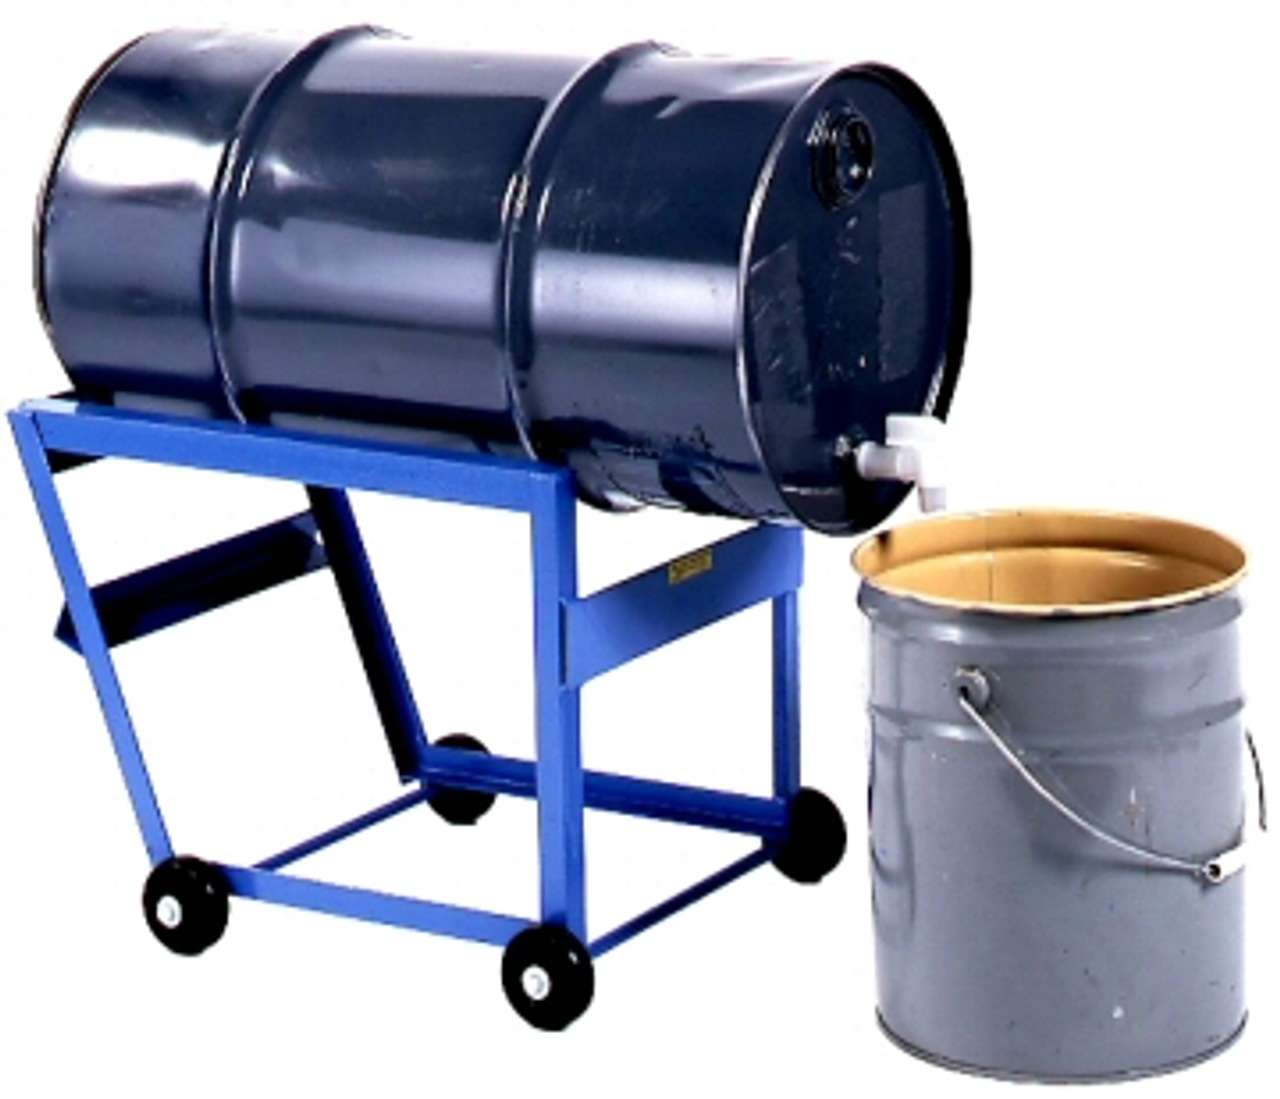 Drum Cradles and Drum Tippers